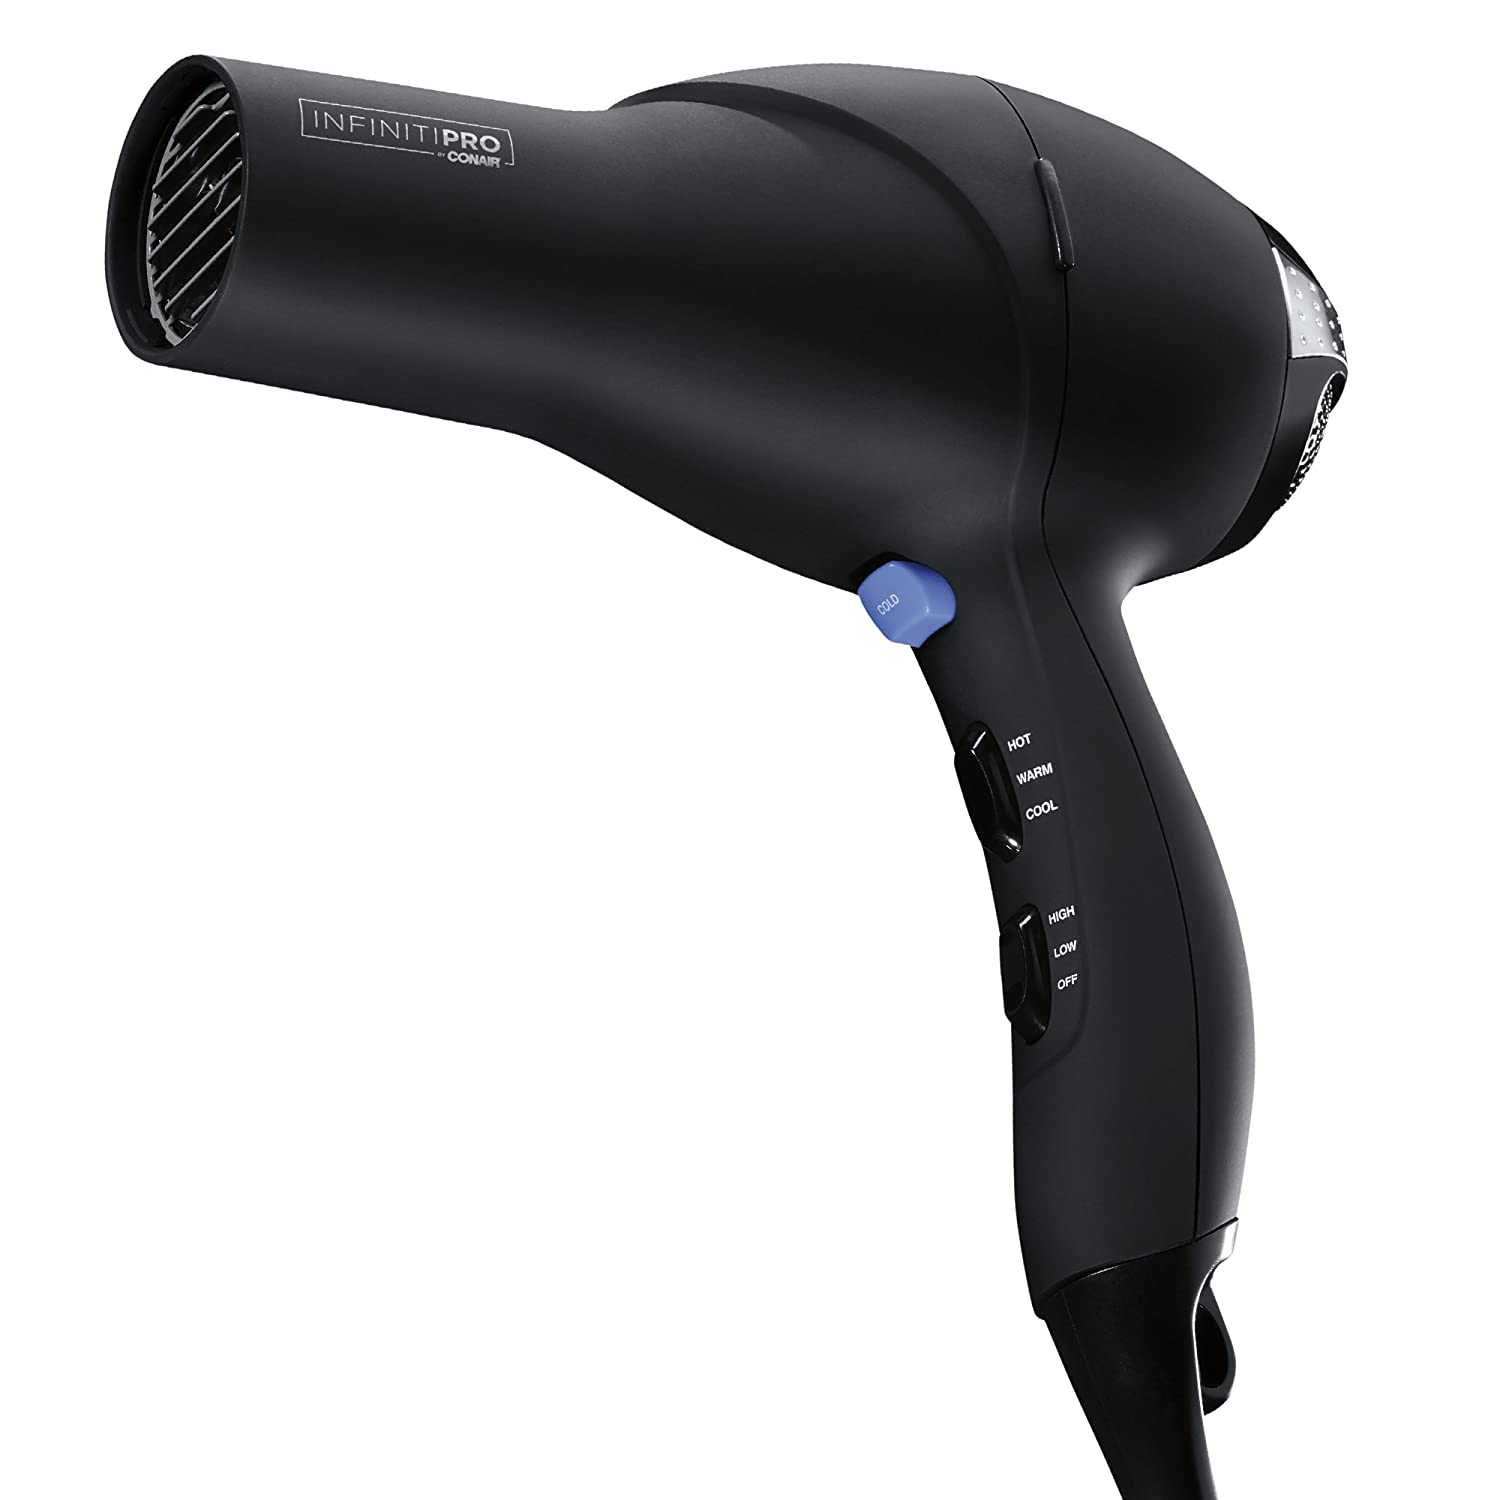 INFINITIPRO BY CONAIR 1875W Salon Performance AC Motor Styling Tool/Hair Dryer; Black